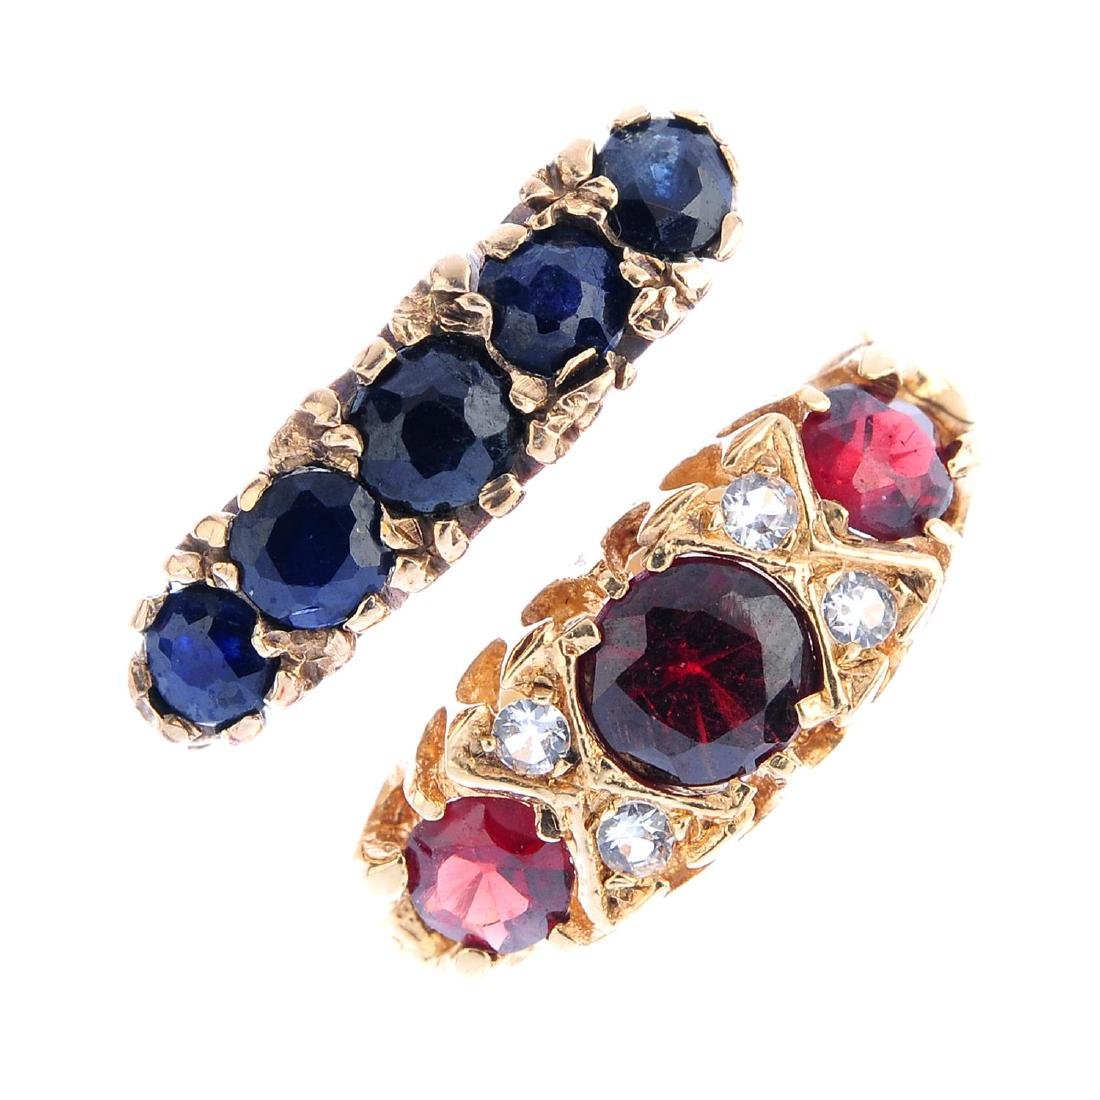 Six 9ct gold gem-set rings. To include a sapphire